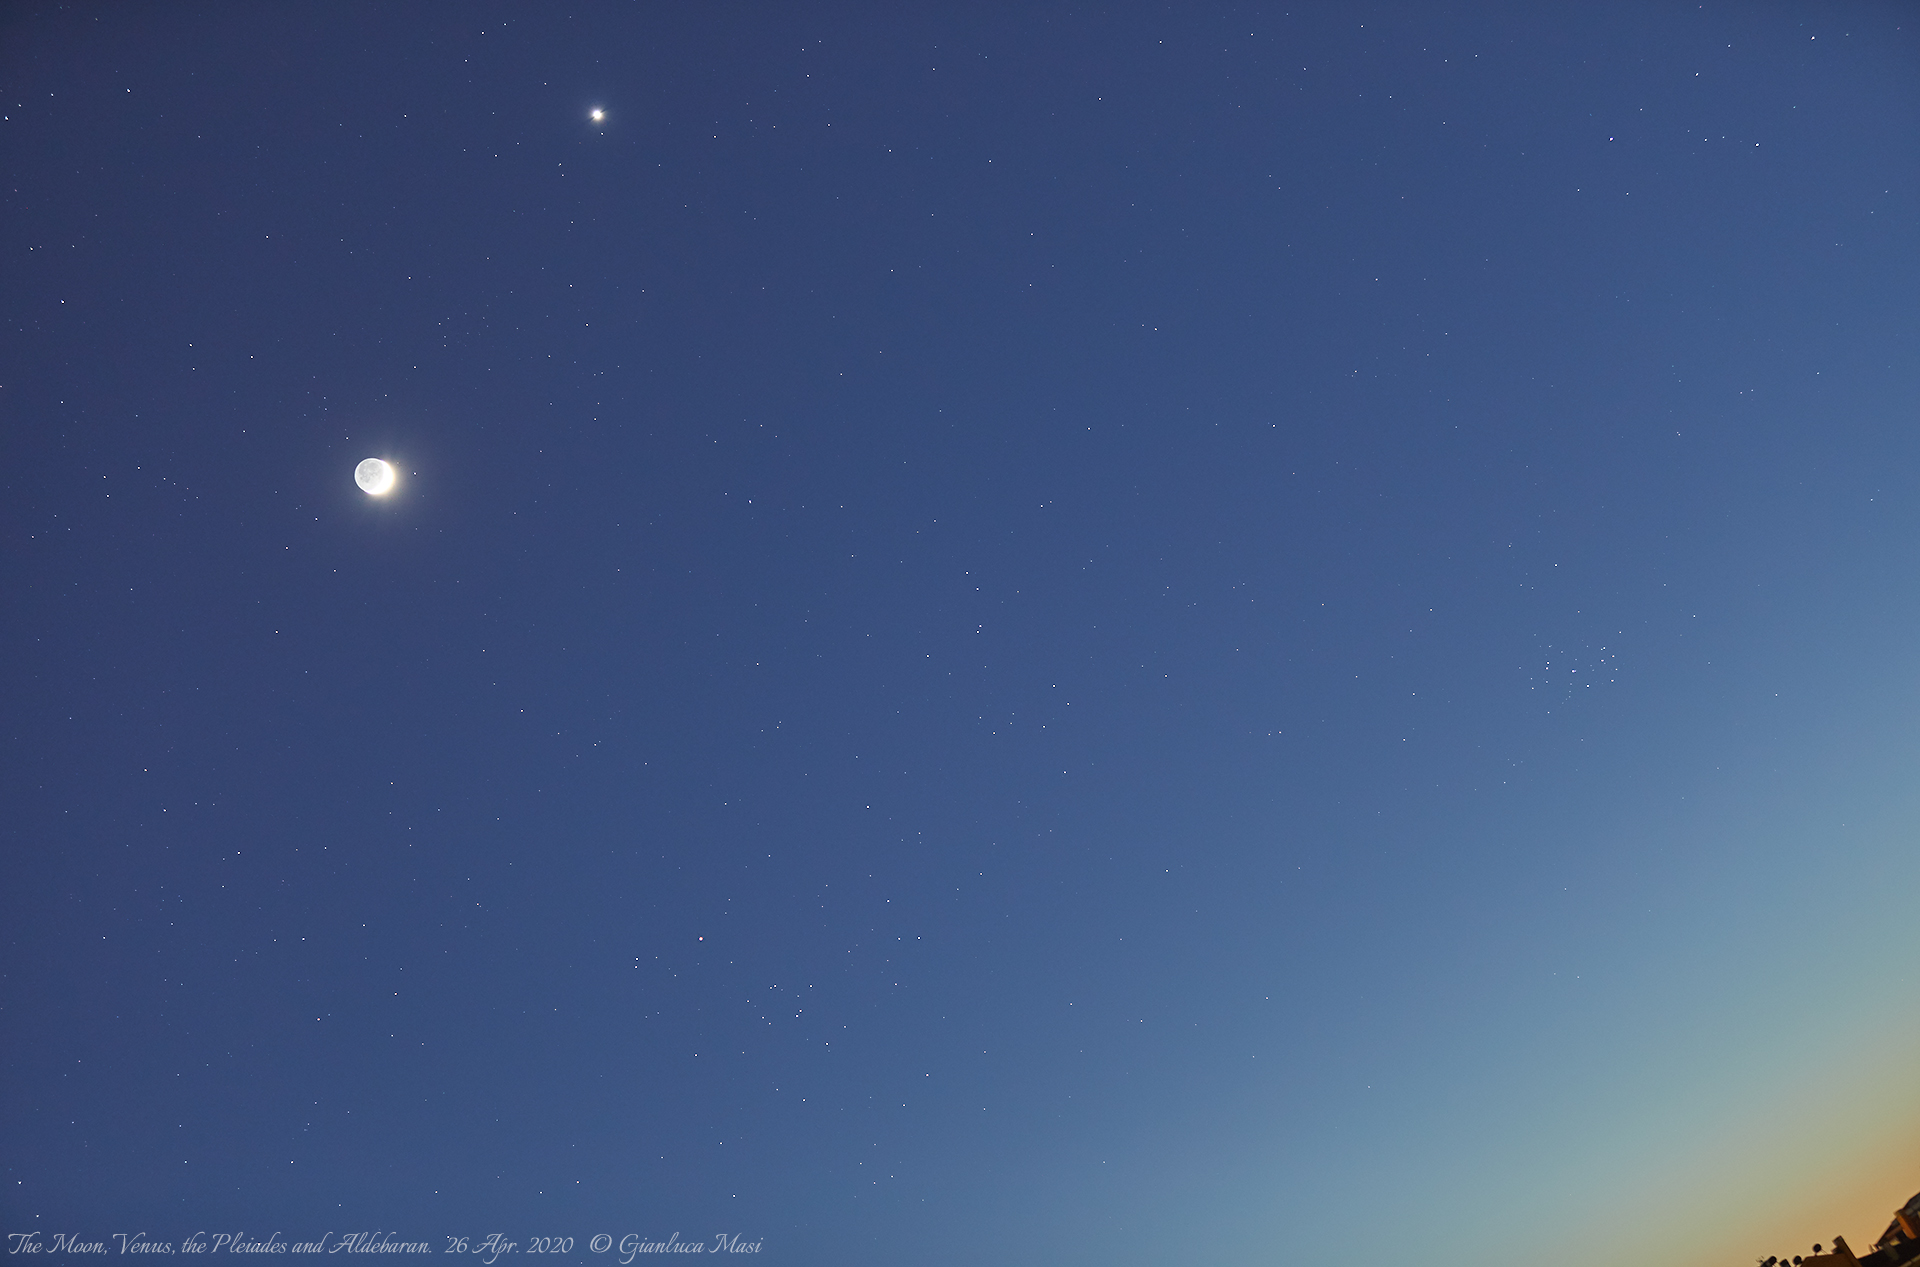 The Moon, Venus, Aldebaran and the Pleiades. 26 Apr. 2020